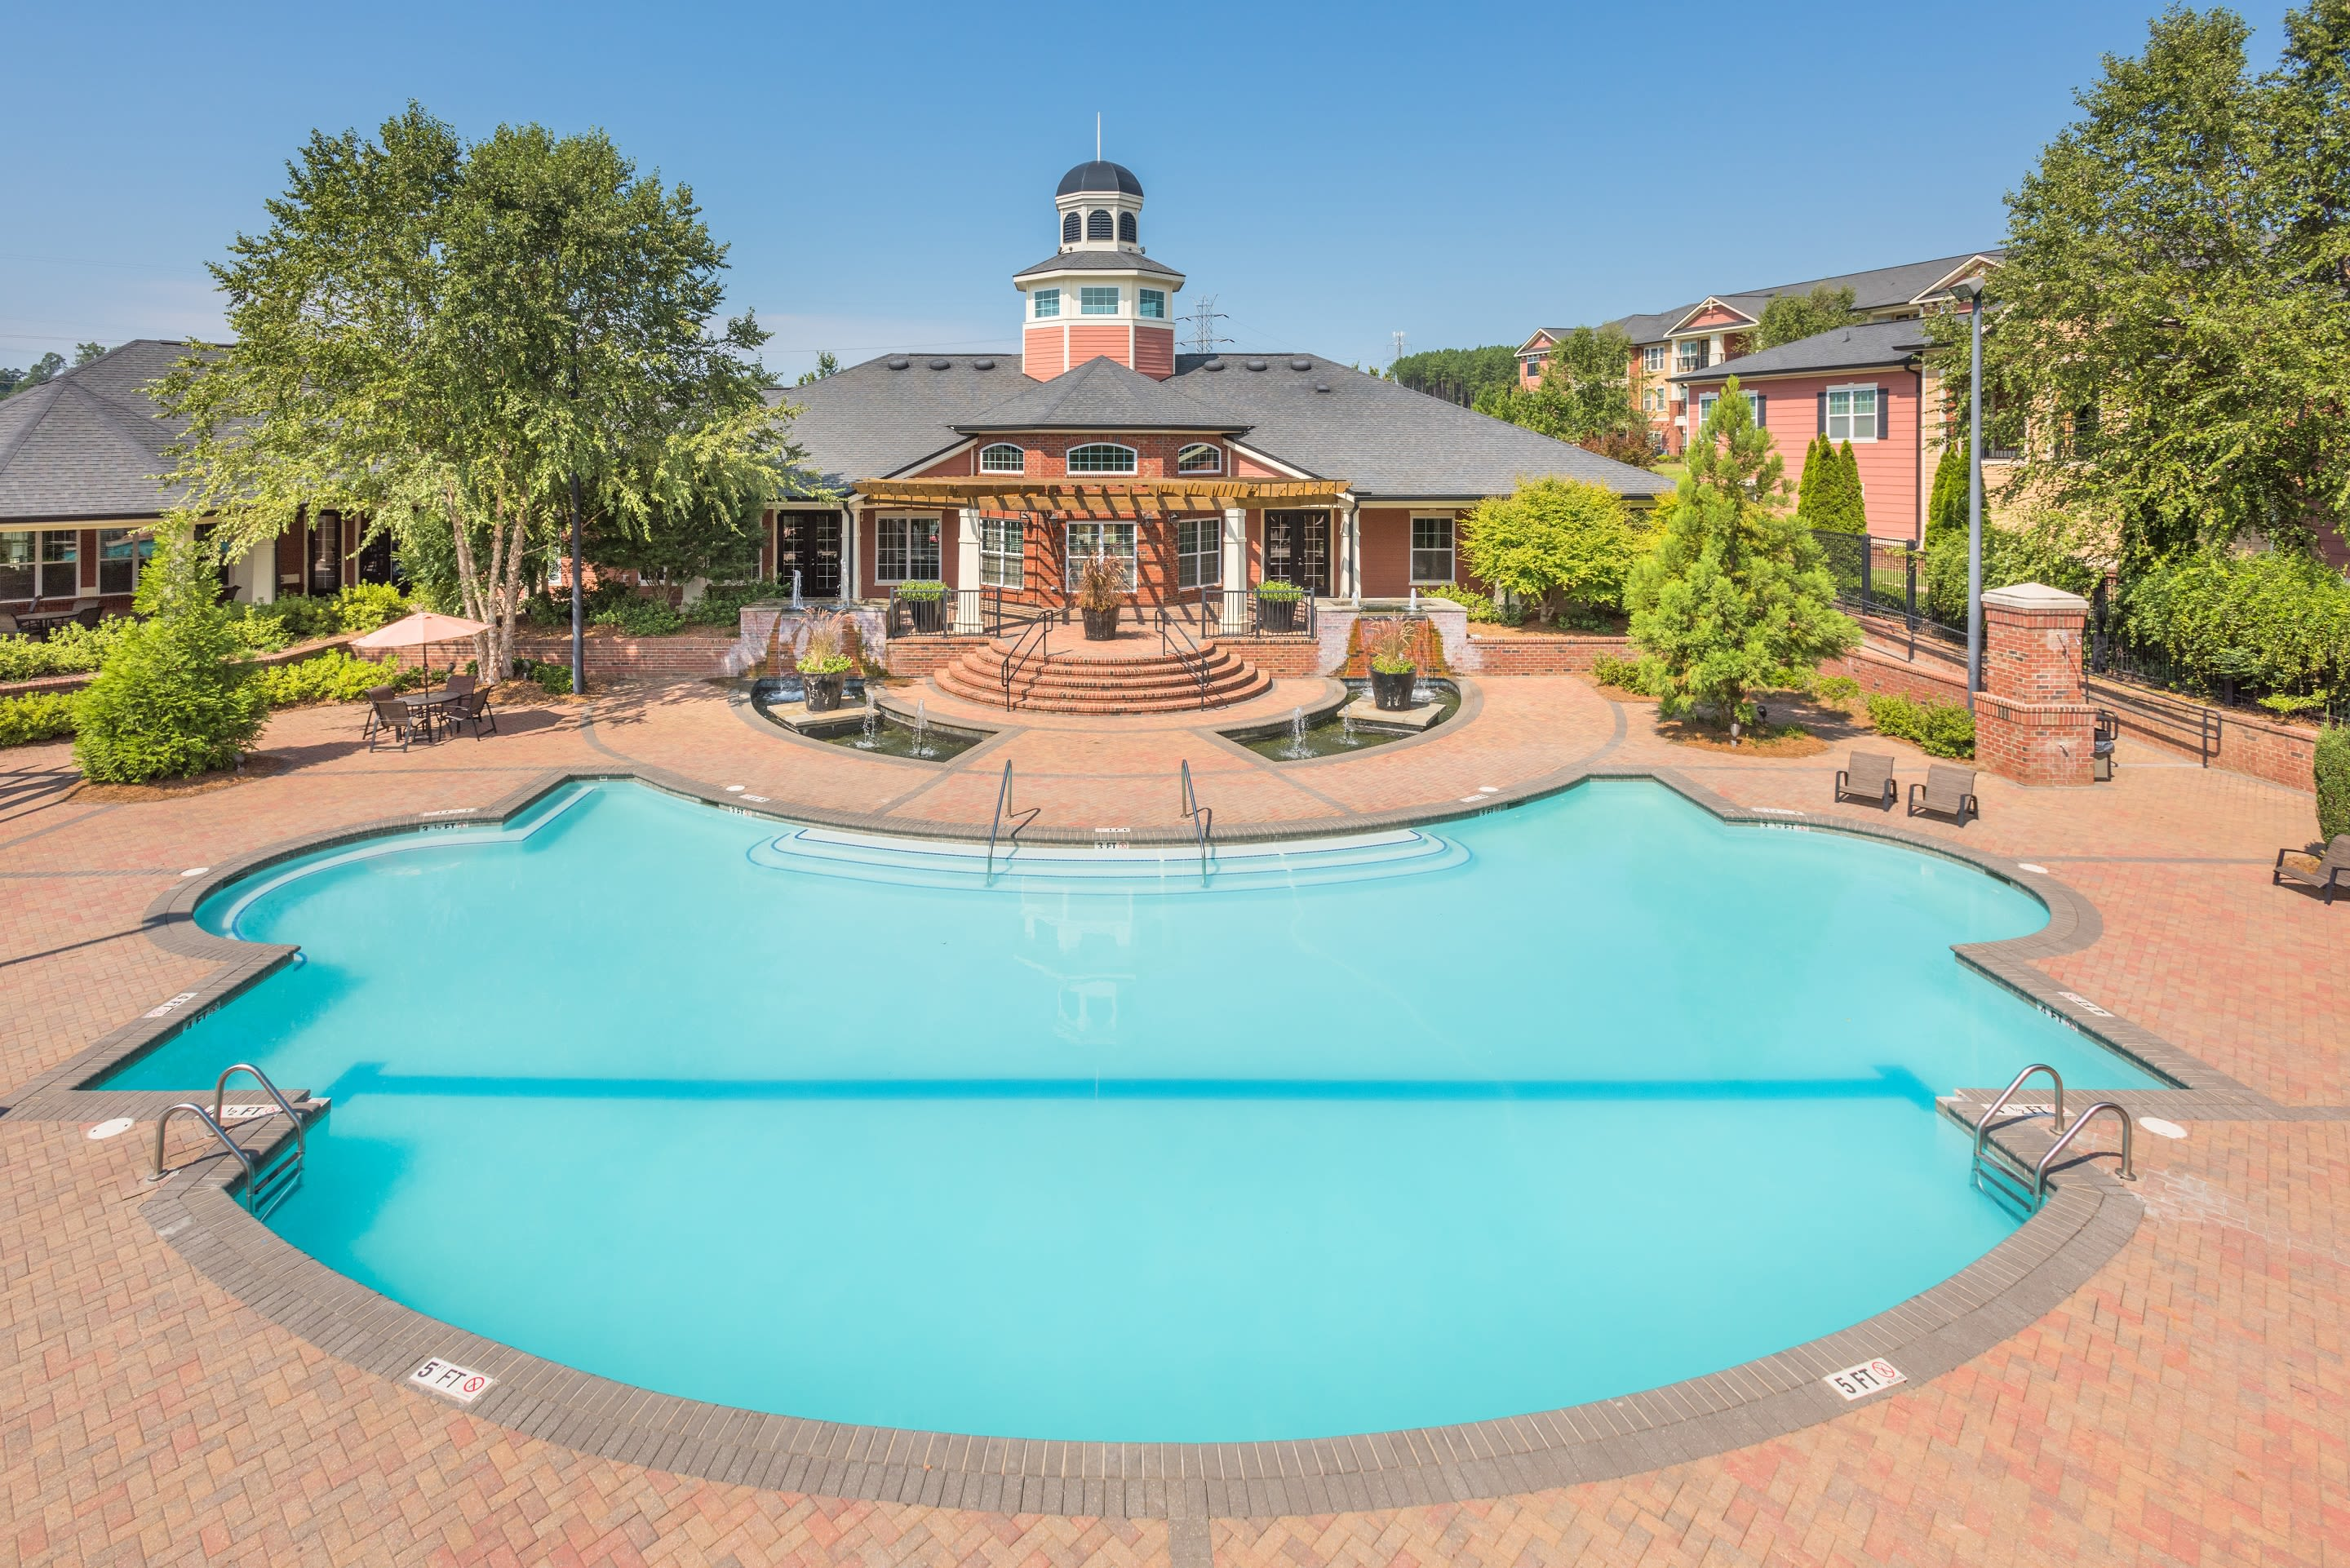 Resort style pool at The Vive in Kannapolis, North Carolina